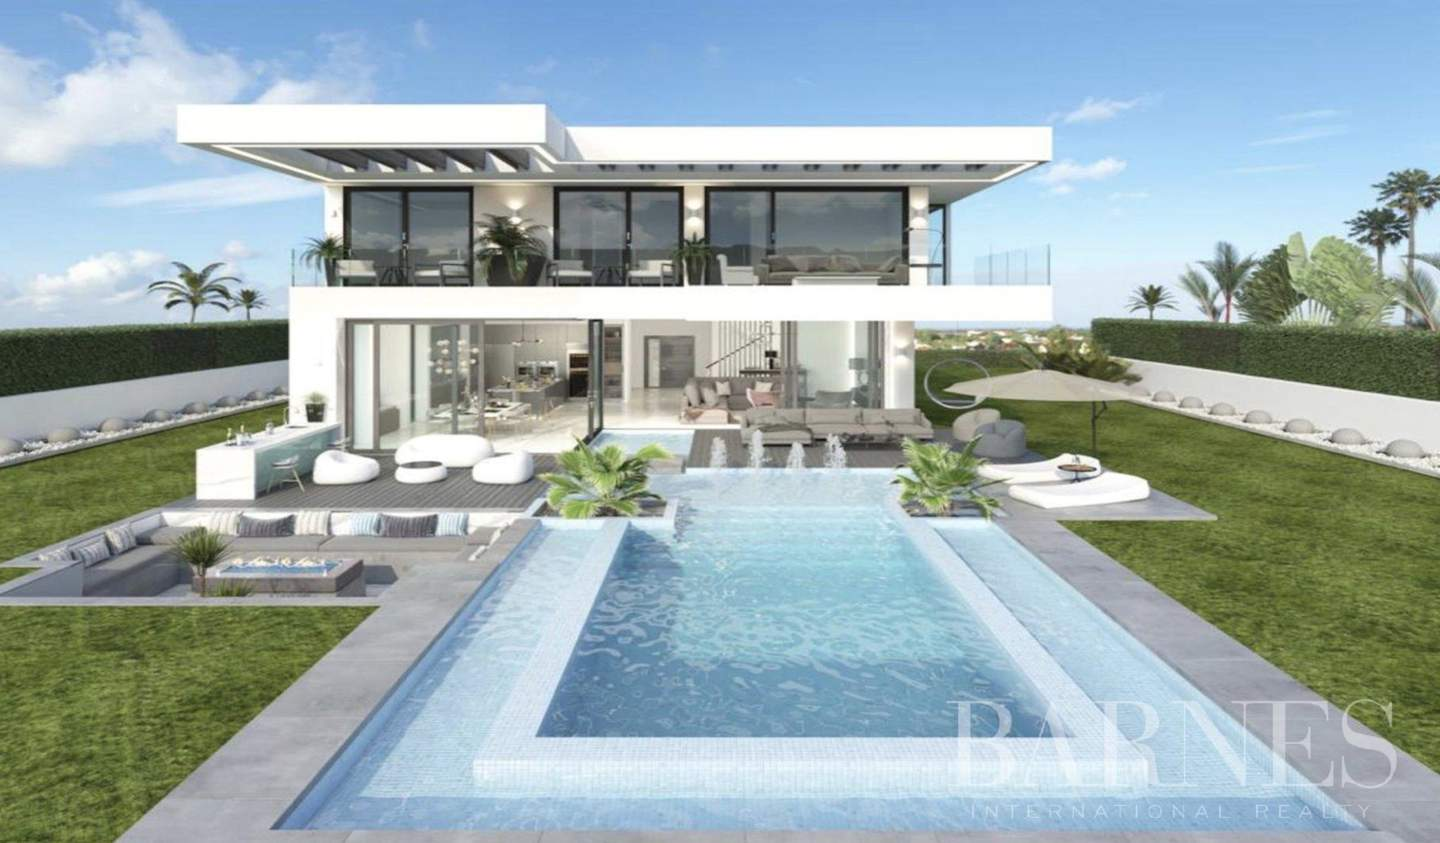 Villa with pool and terrace Costa